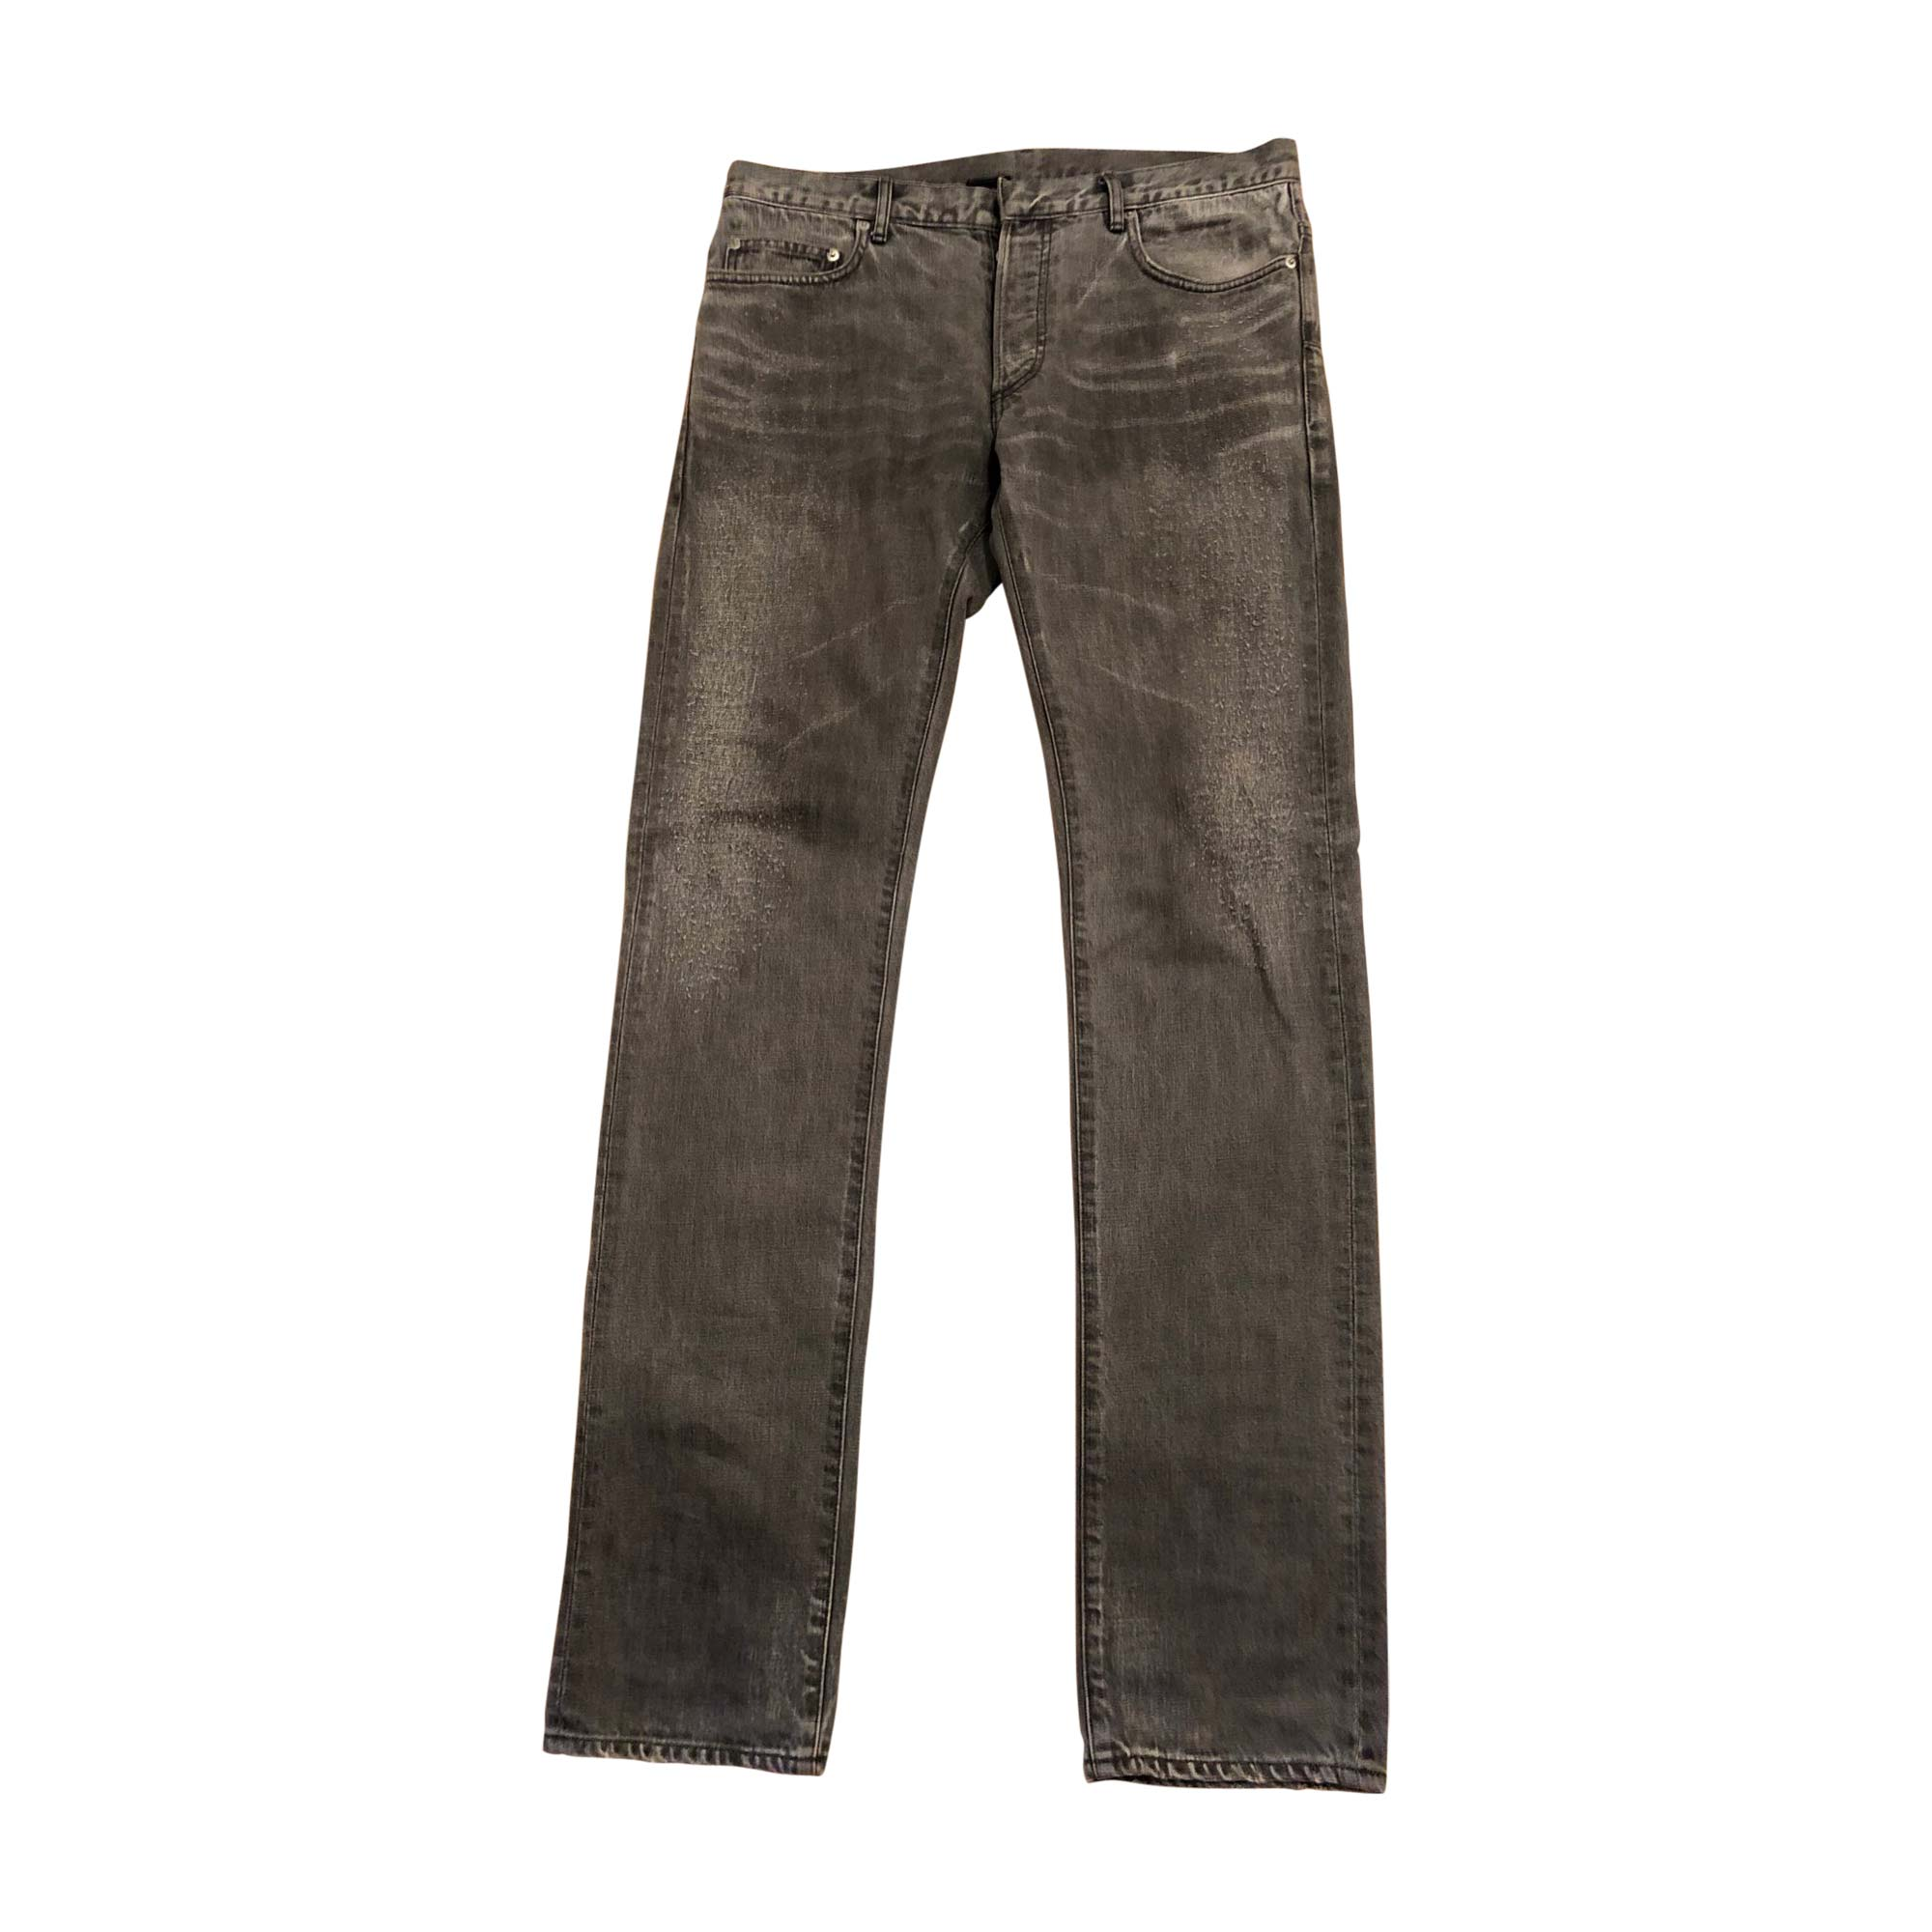 Straight Leg Jeans DIOR HOMME Gray, charcoal